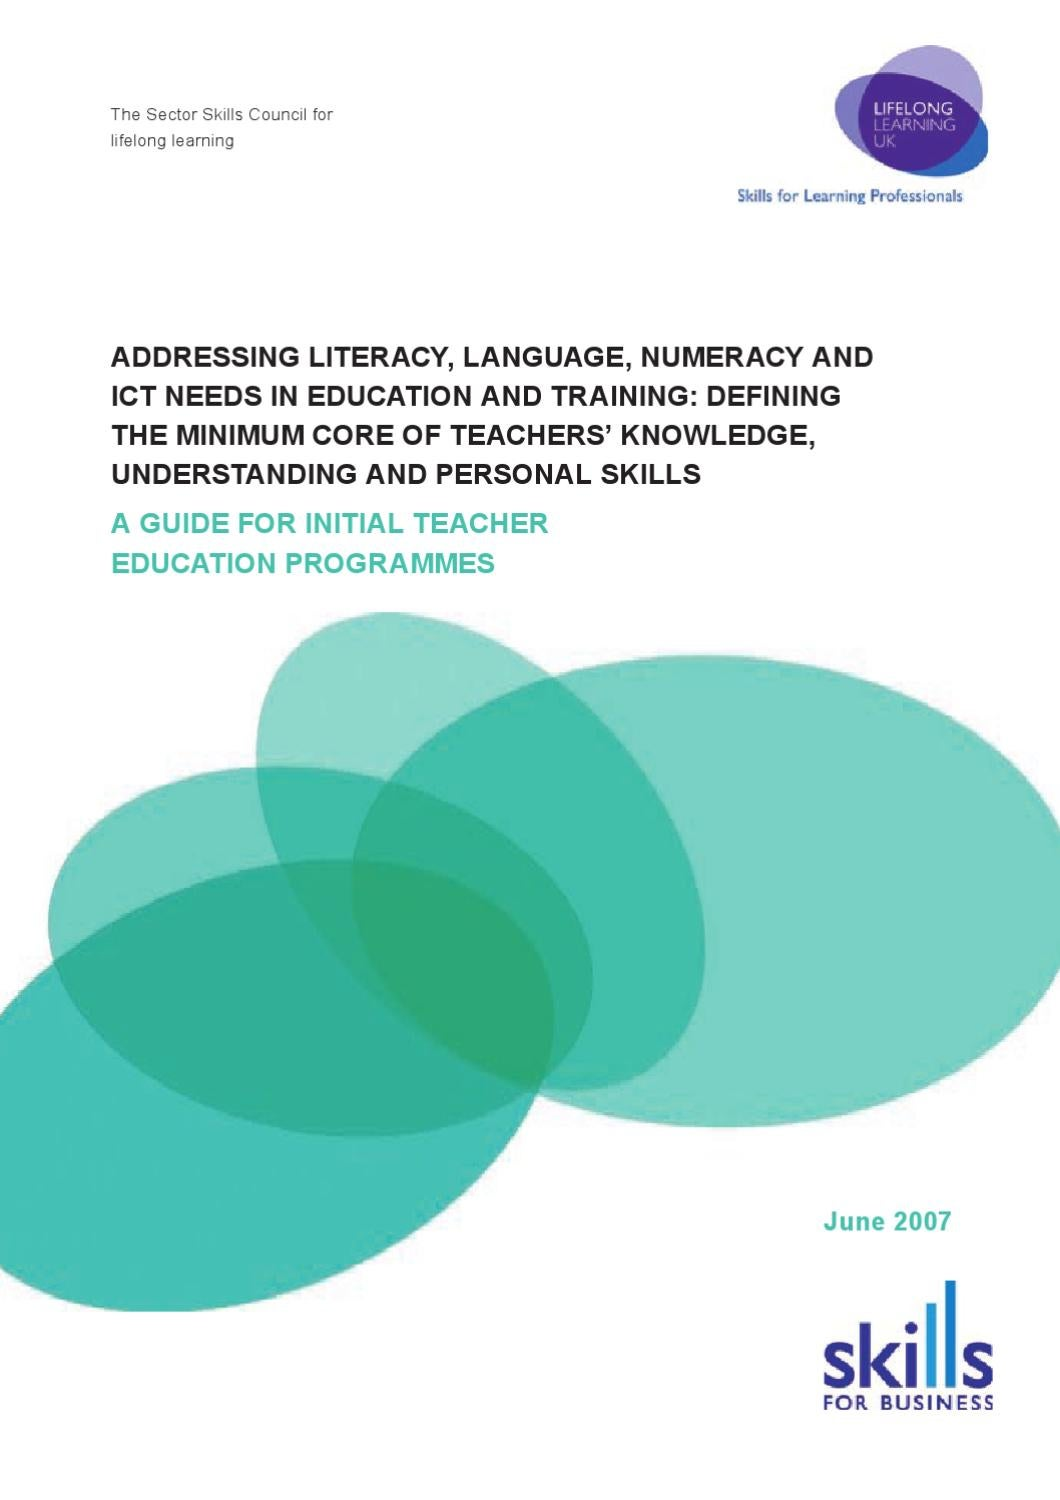 identify ways in which own knowledge understanding and skill in literacy numeracy and itc impact on